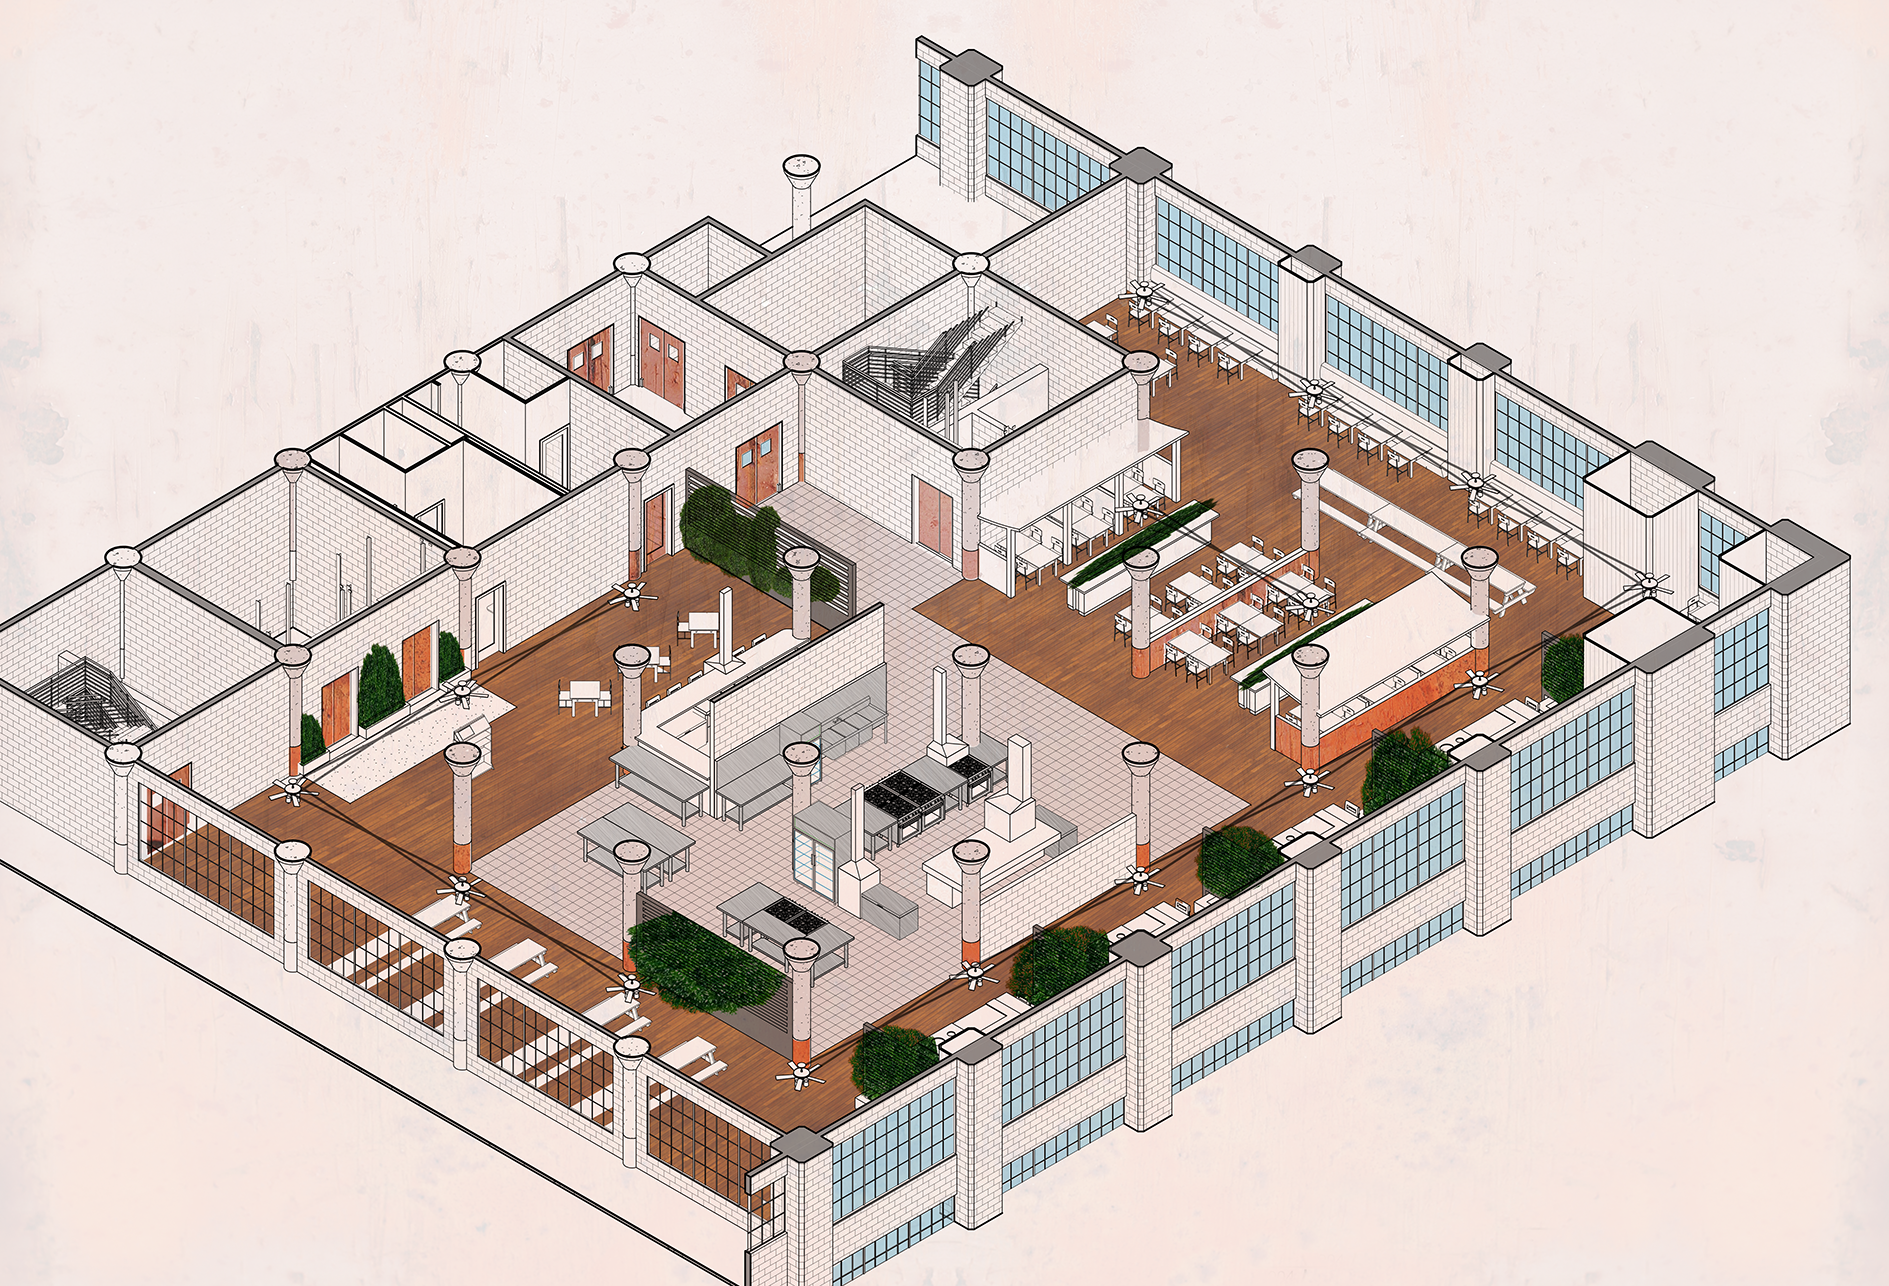 Indus  (Old Strategy)  - Bringing new life into one of Detroit's abandoned industrial infrastructures by combining Building Integrated Agriculture with a space to consume the produce created.